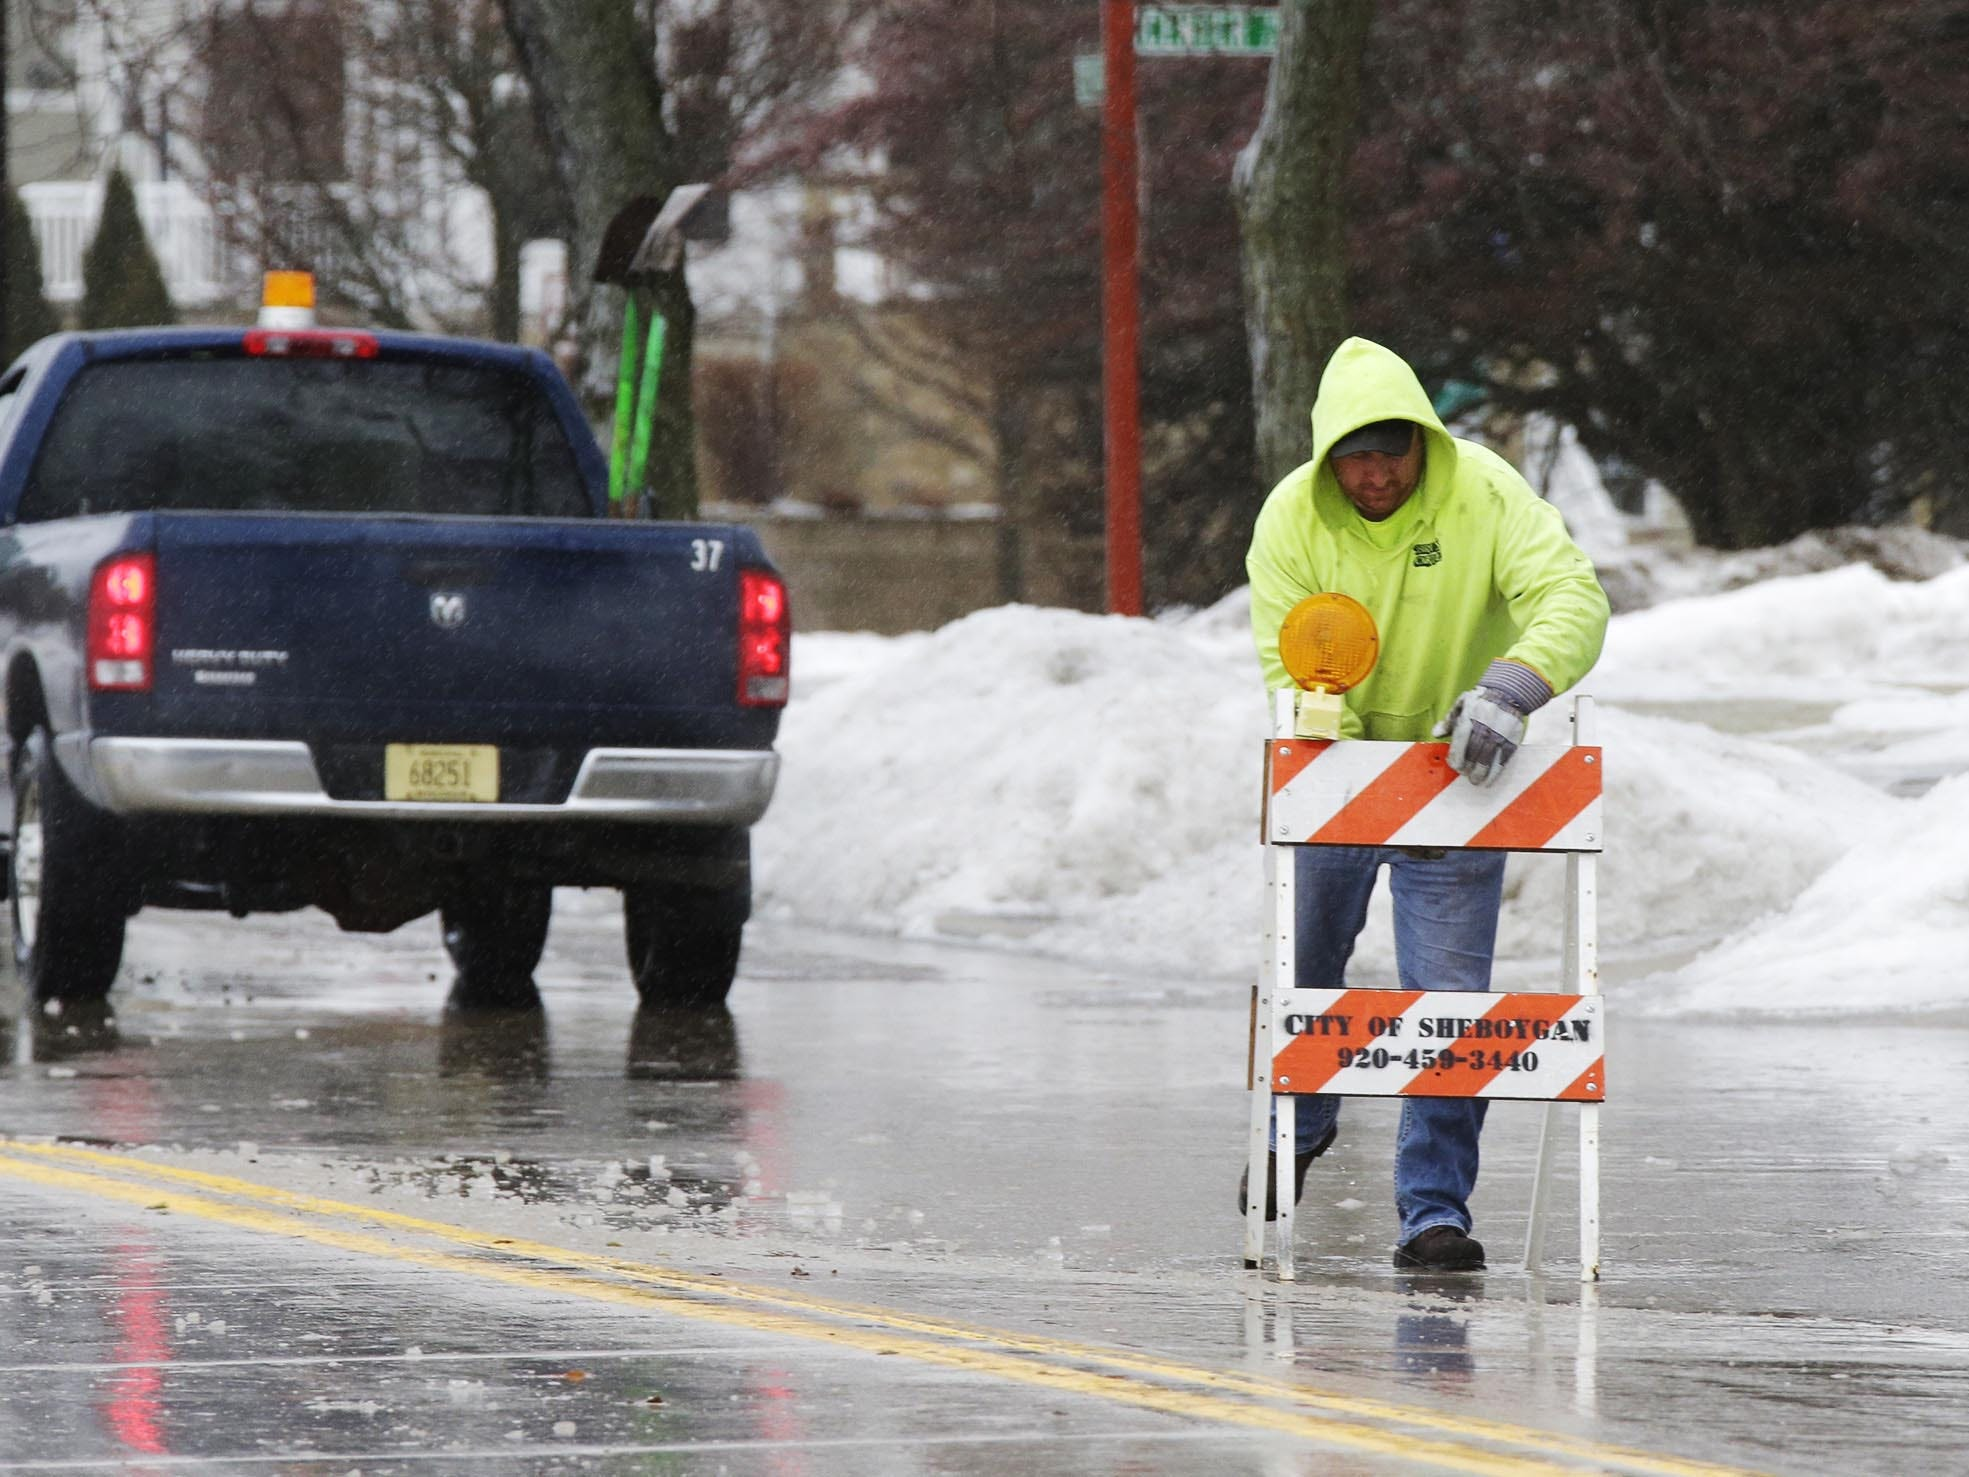 A City of Sheboygan public works employee, who did not want to give his name, places a caution sign by a water clogged Broughton Drive, Tuesday, February 5, 2019, in Sheboygan, Wis. Early afternoon rain combined with frozen street drains caused localized flooding.